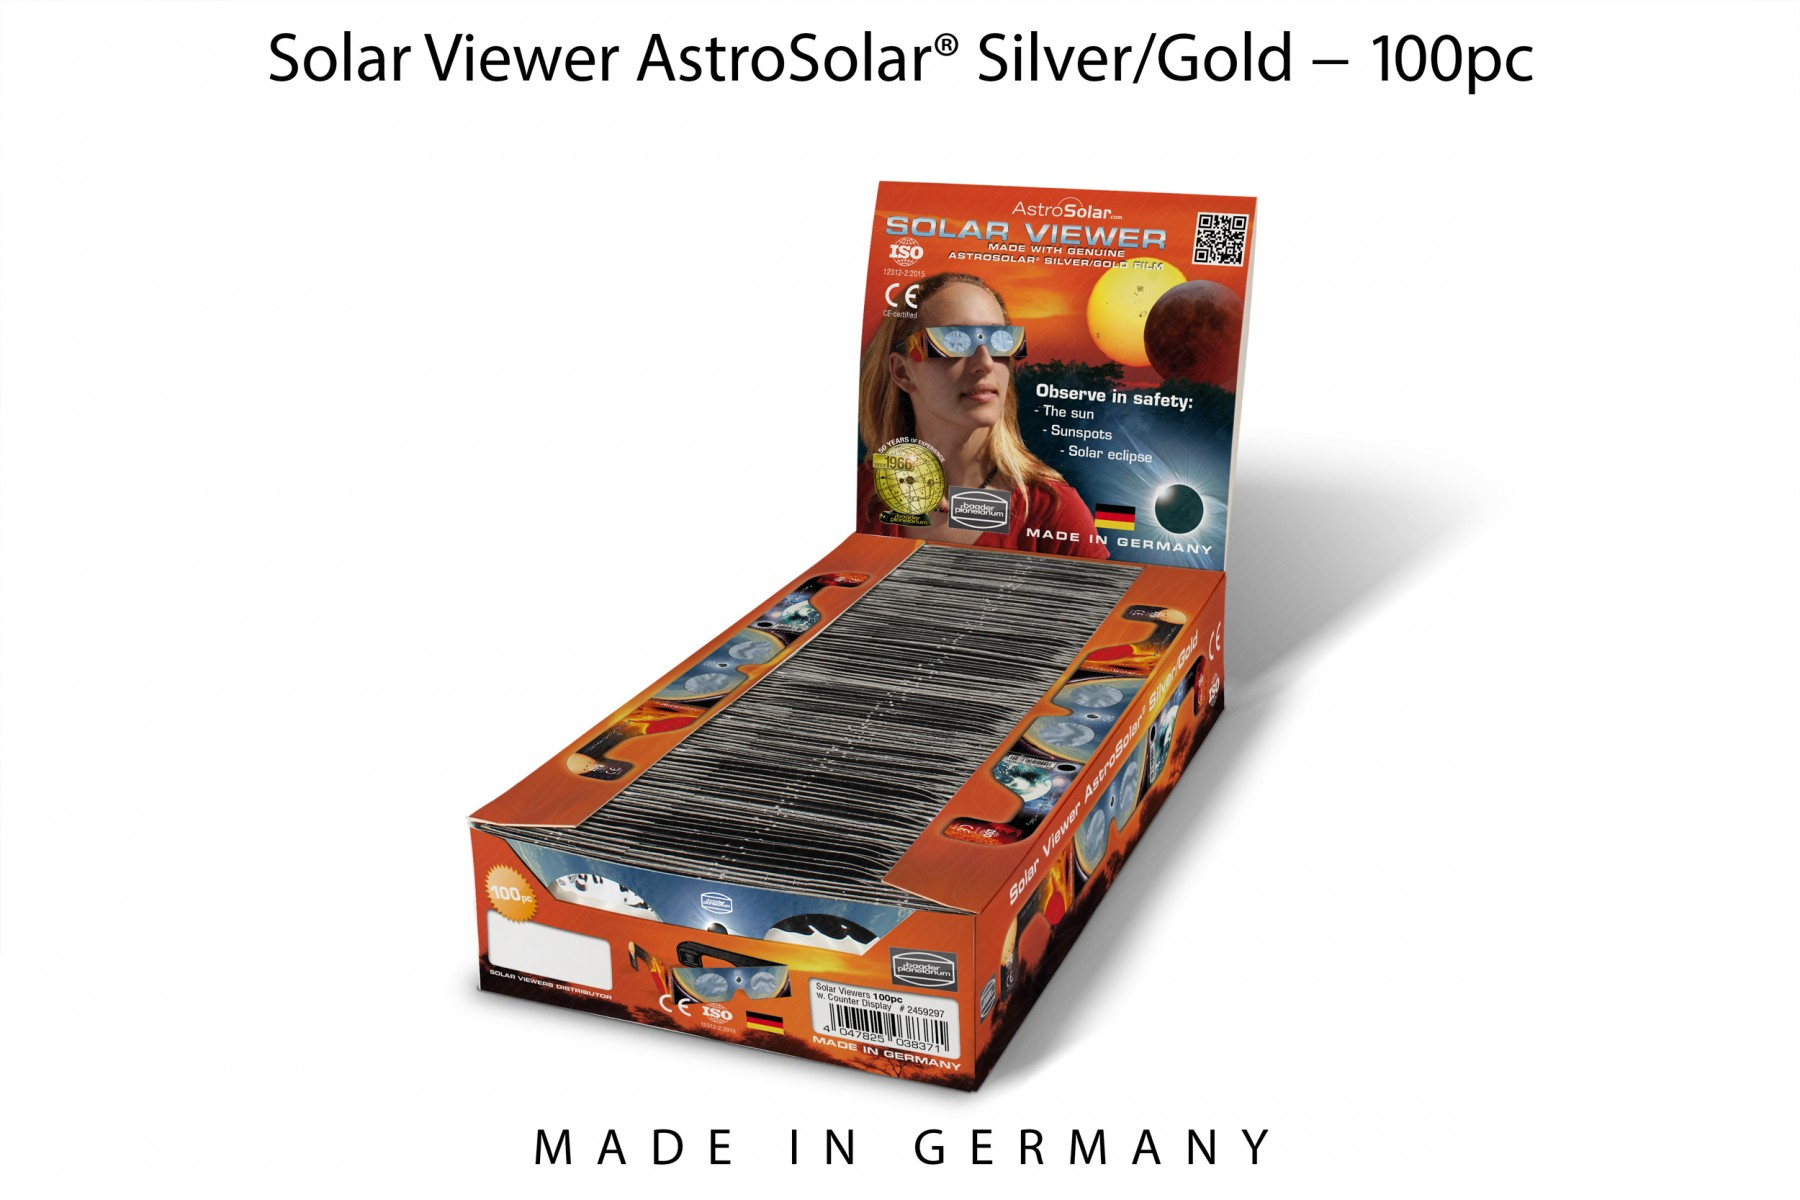 100 x Solar Viewer AstroSolar® Silver/Gold im Thekendisplay